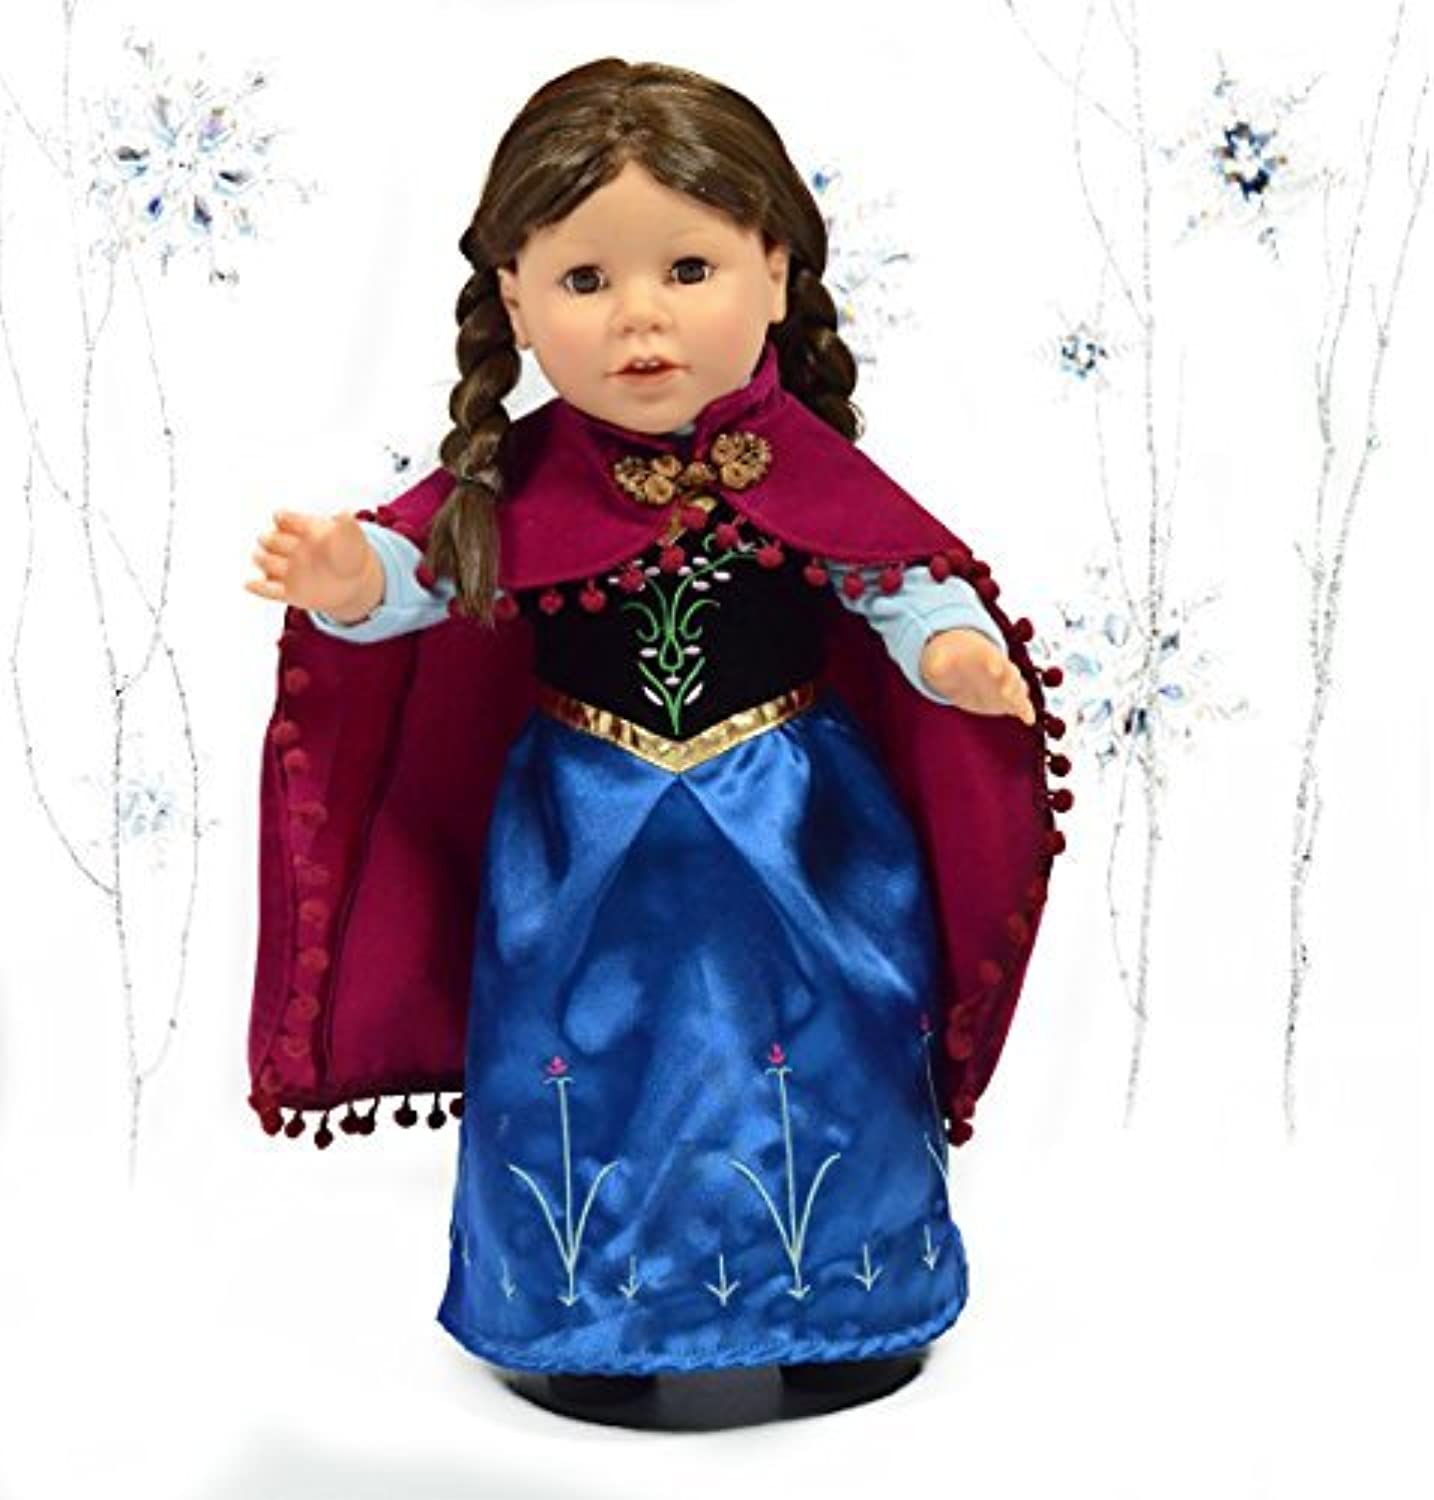 Anna Princess Royal Dress with Cape for 18 Inch Dolls  American Girl Doll Clothes by The New York Doll Collection